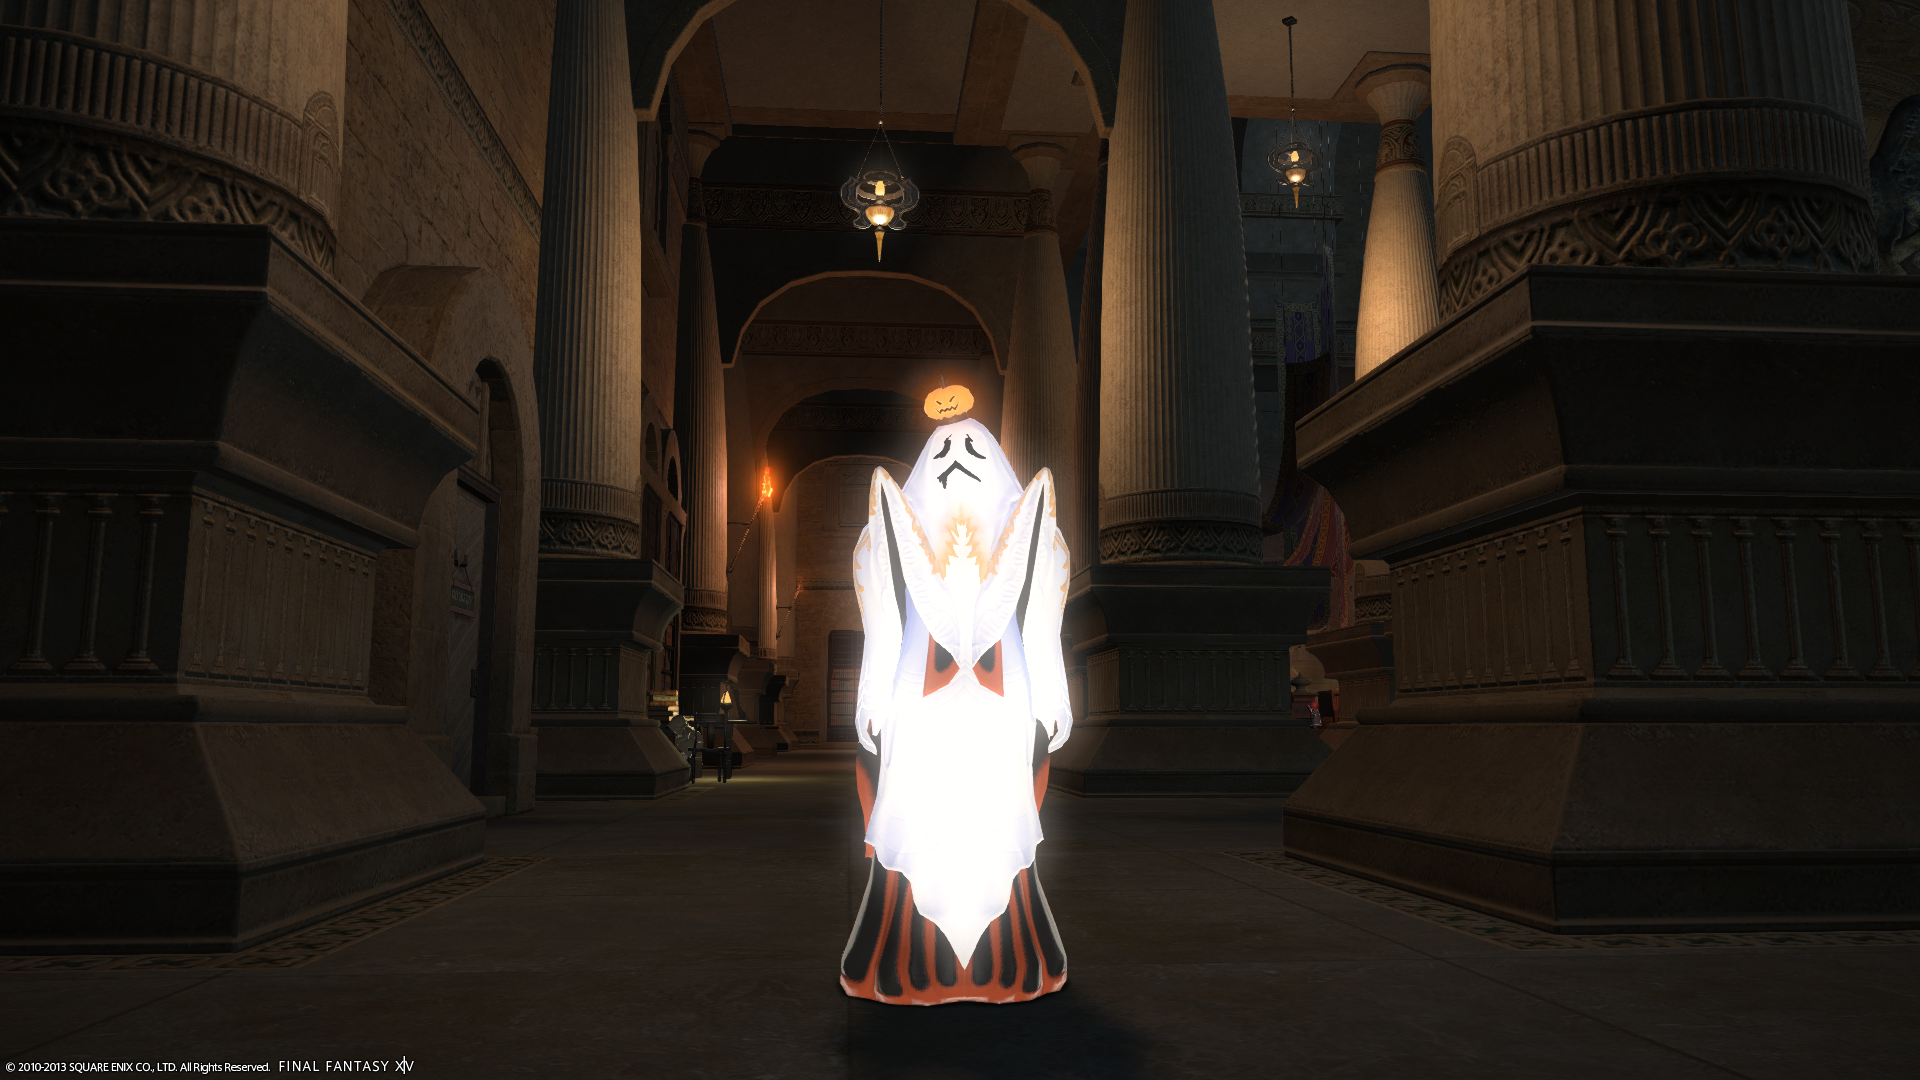 rocl ffxiv event topic things only mentioned costume-y earlier this pumpkin hats bought costumes ghost weaver from thing slutty miqote there sure like just crappy coatee some bottom wearing black bikini halloween